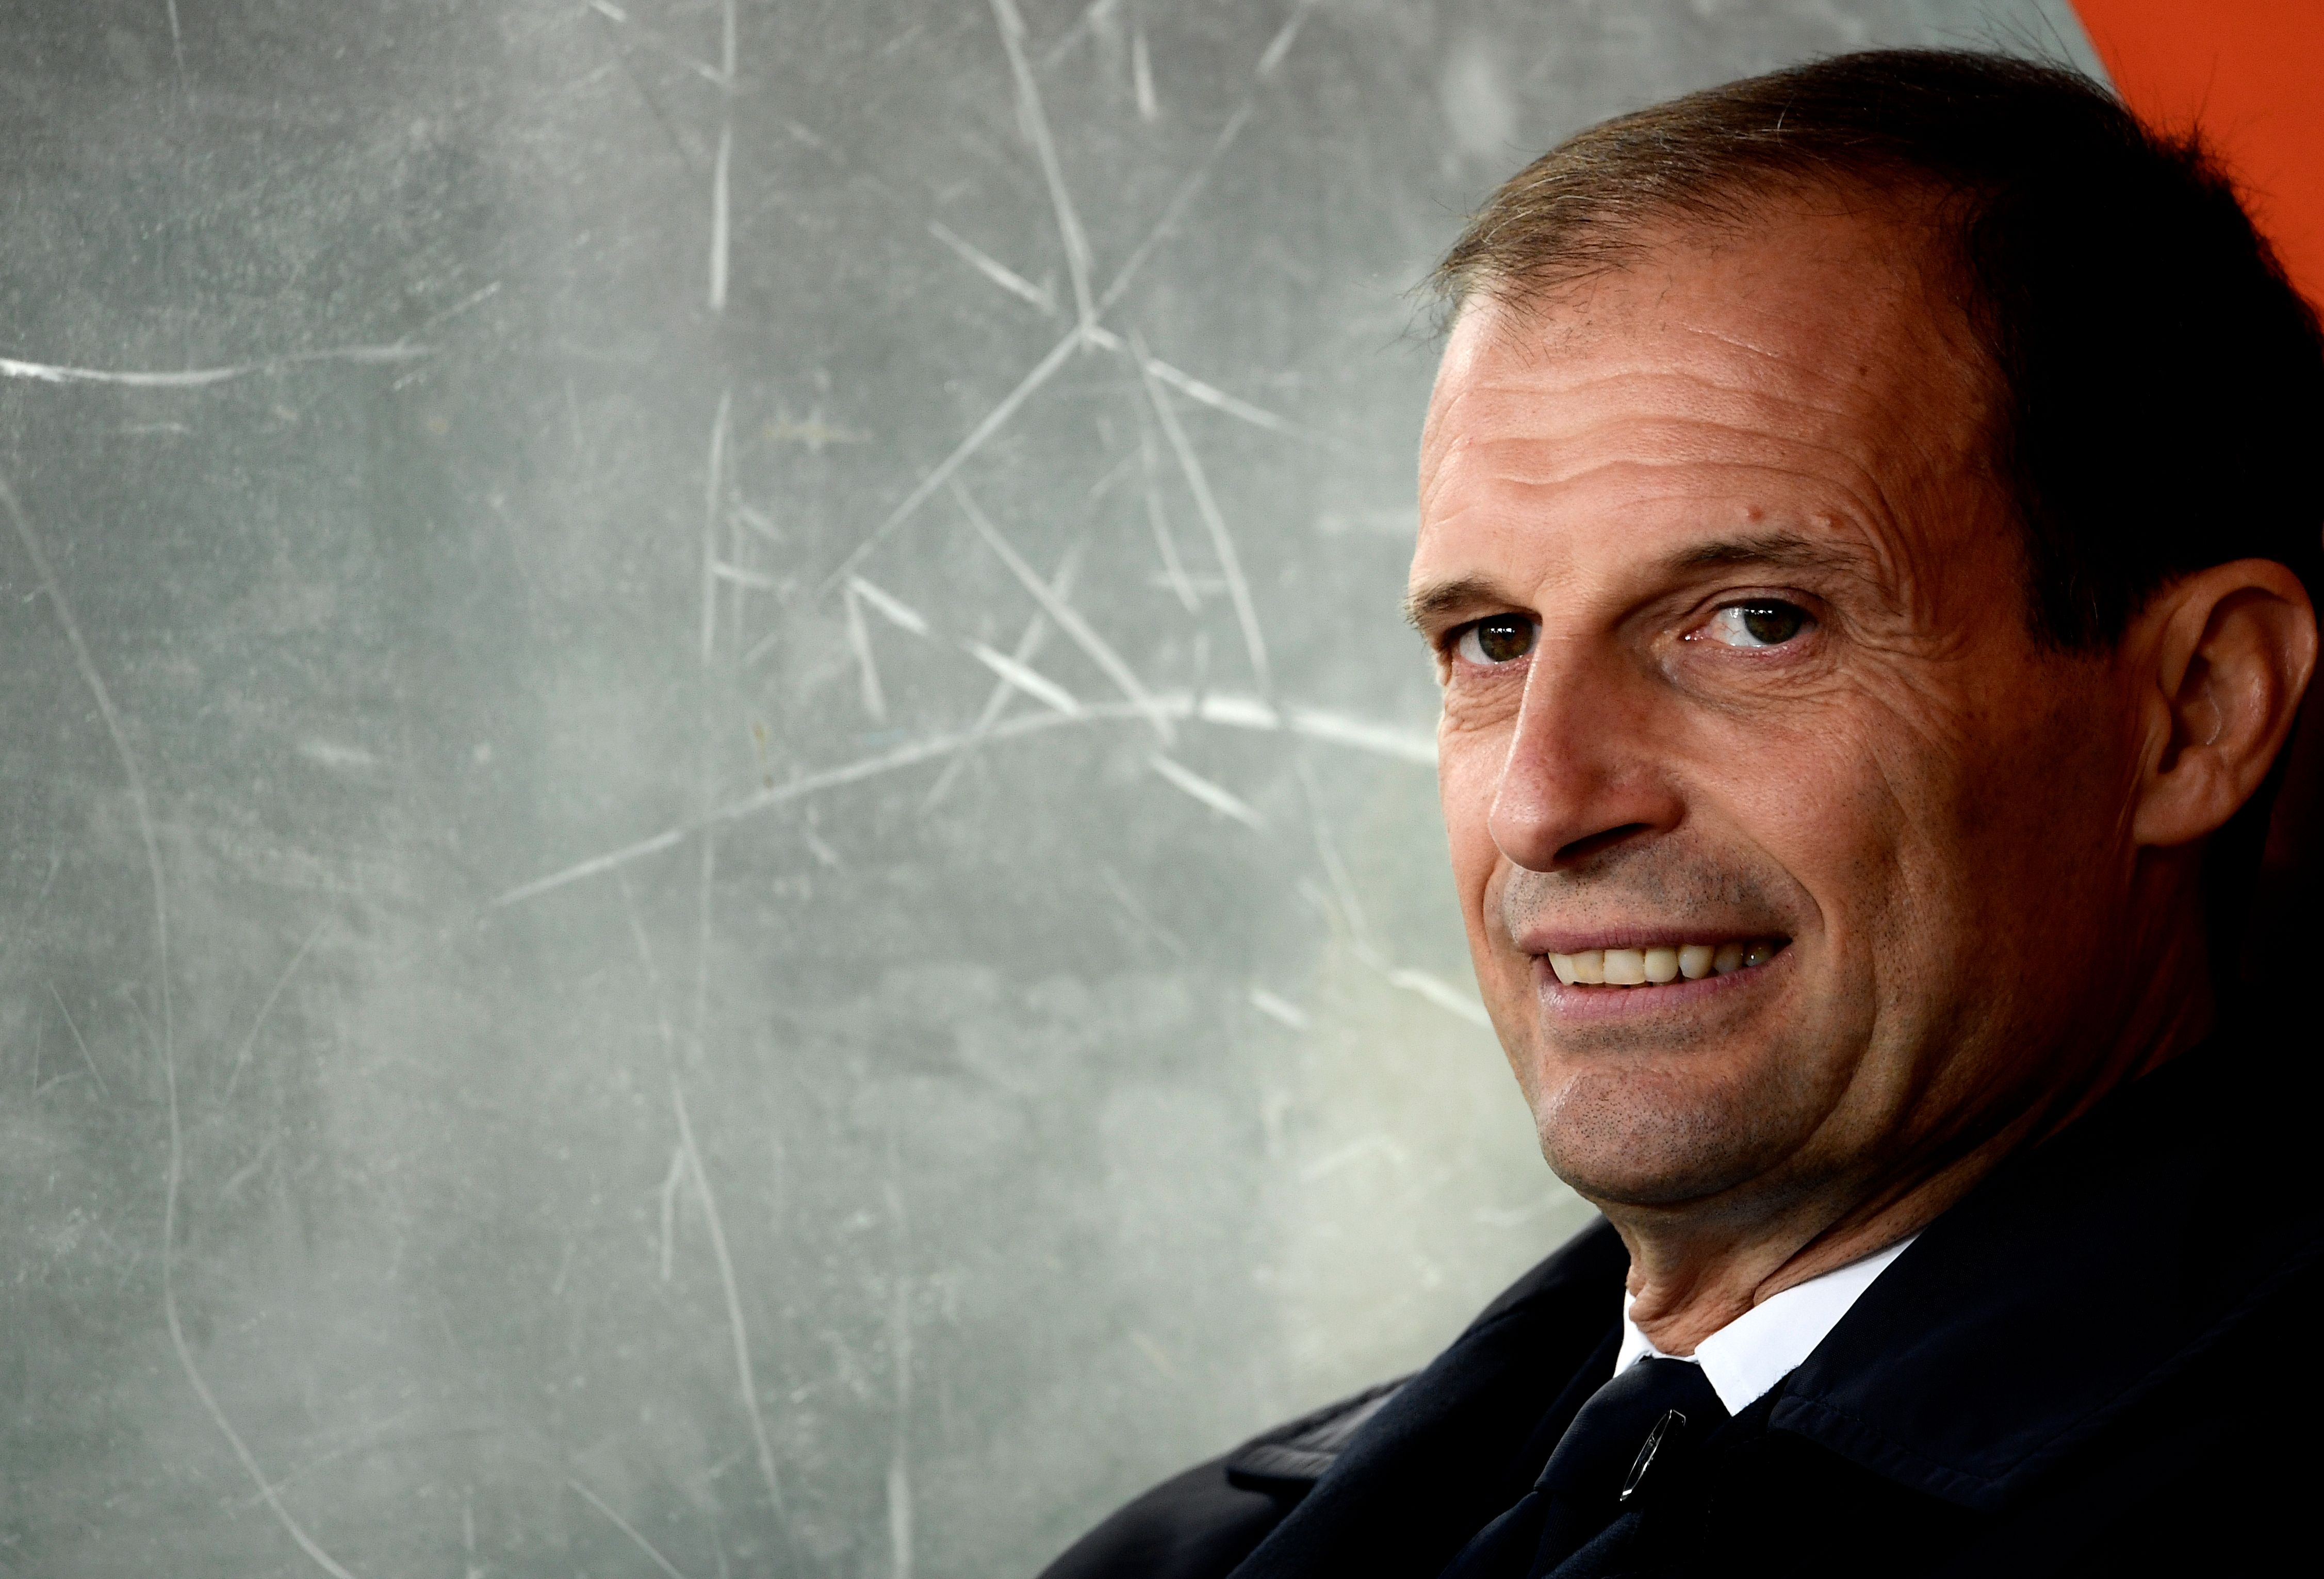 Signing Max Allegri would be a coup for Arsenal (Photo by Filippo MONTEFORTE / AFP) (Photo credit should read FILIPPO MONTEFORTE/AFP/Getty Images)